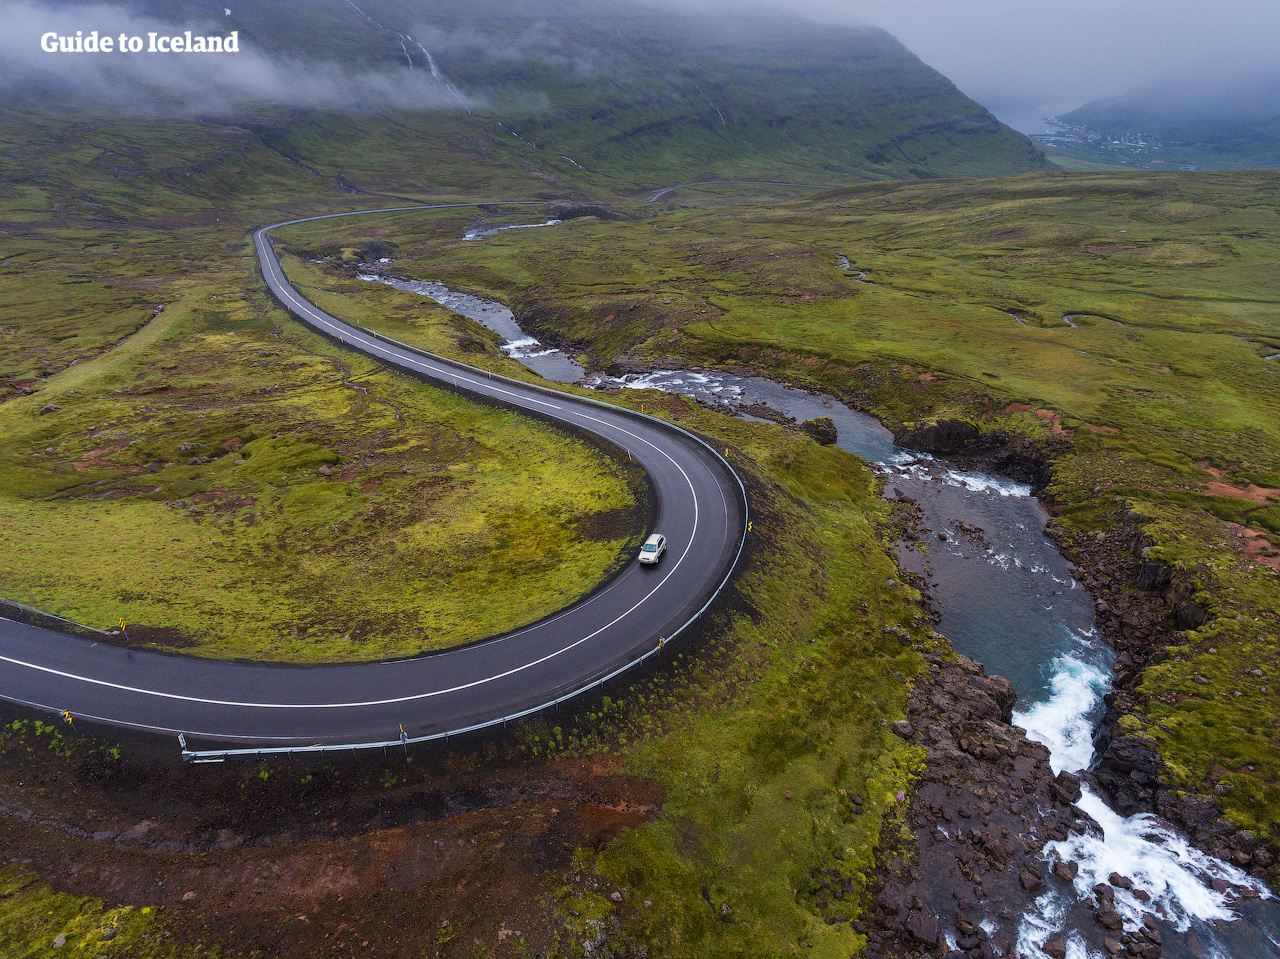 Le guide de la location de voiture en Islande